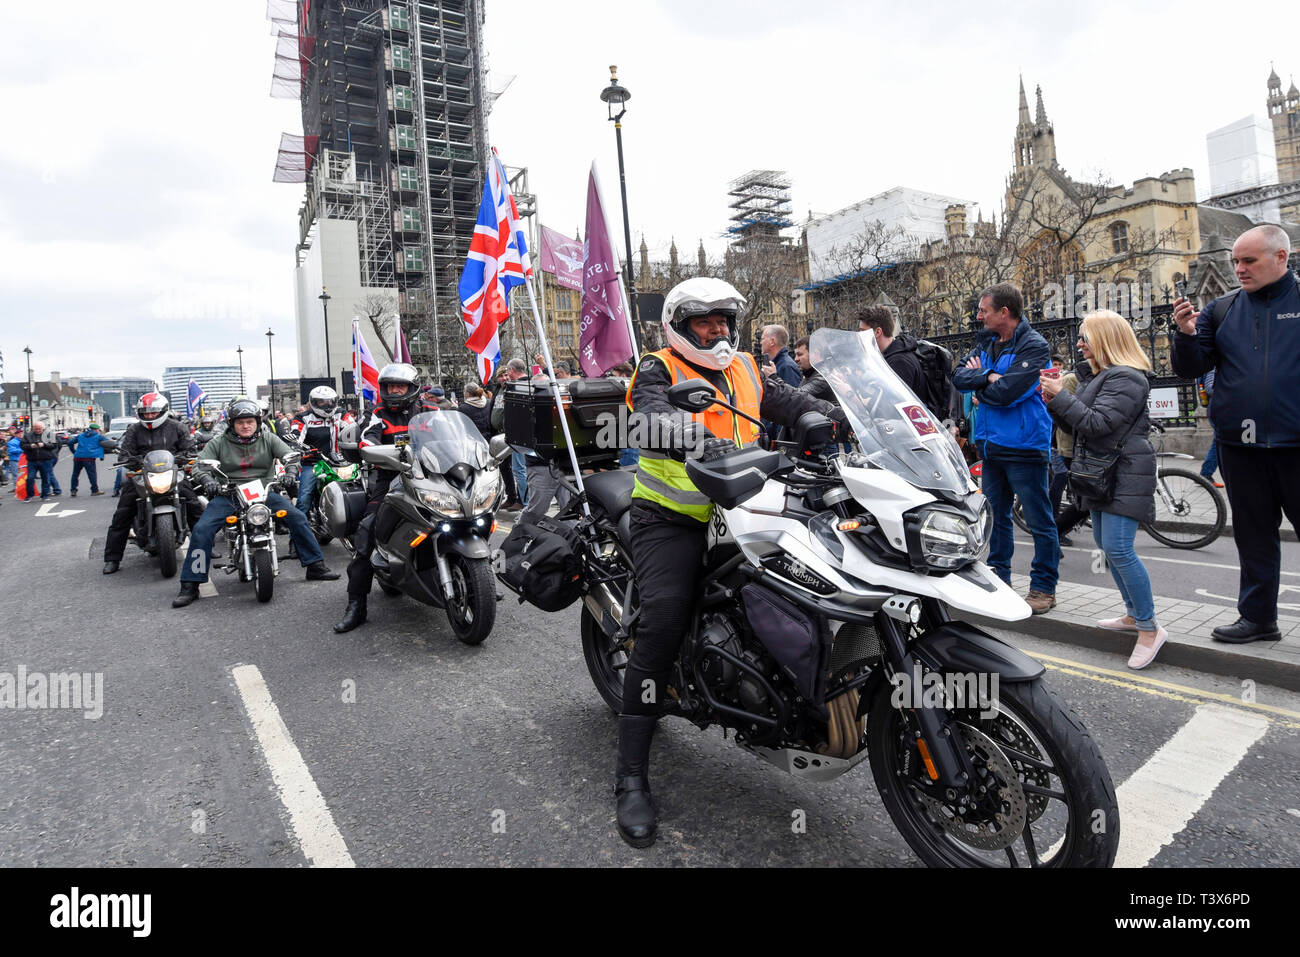 London, UK. 12th Apr 2019. Thousands of bikers take part in a rally called 'Rolling Thunder' in central London in support of 'Soldier F, a 77-year-old Army veteran who faces charges of murder after killing two civil rights demonstrators in Londonderry, Northern Ireland, in 1972, on what became known as Bloody Sunday. Credit: Stephen Chung/Alamy Live News - Stock Image